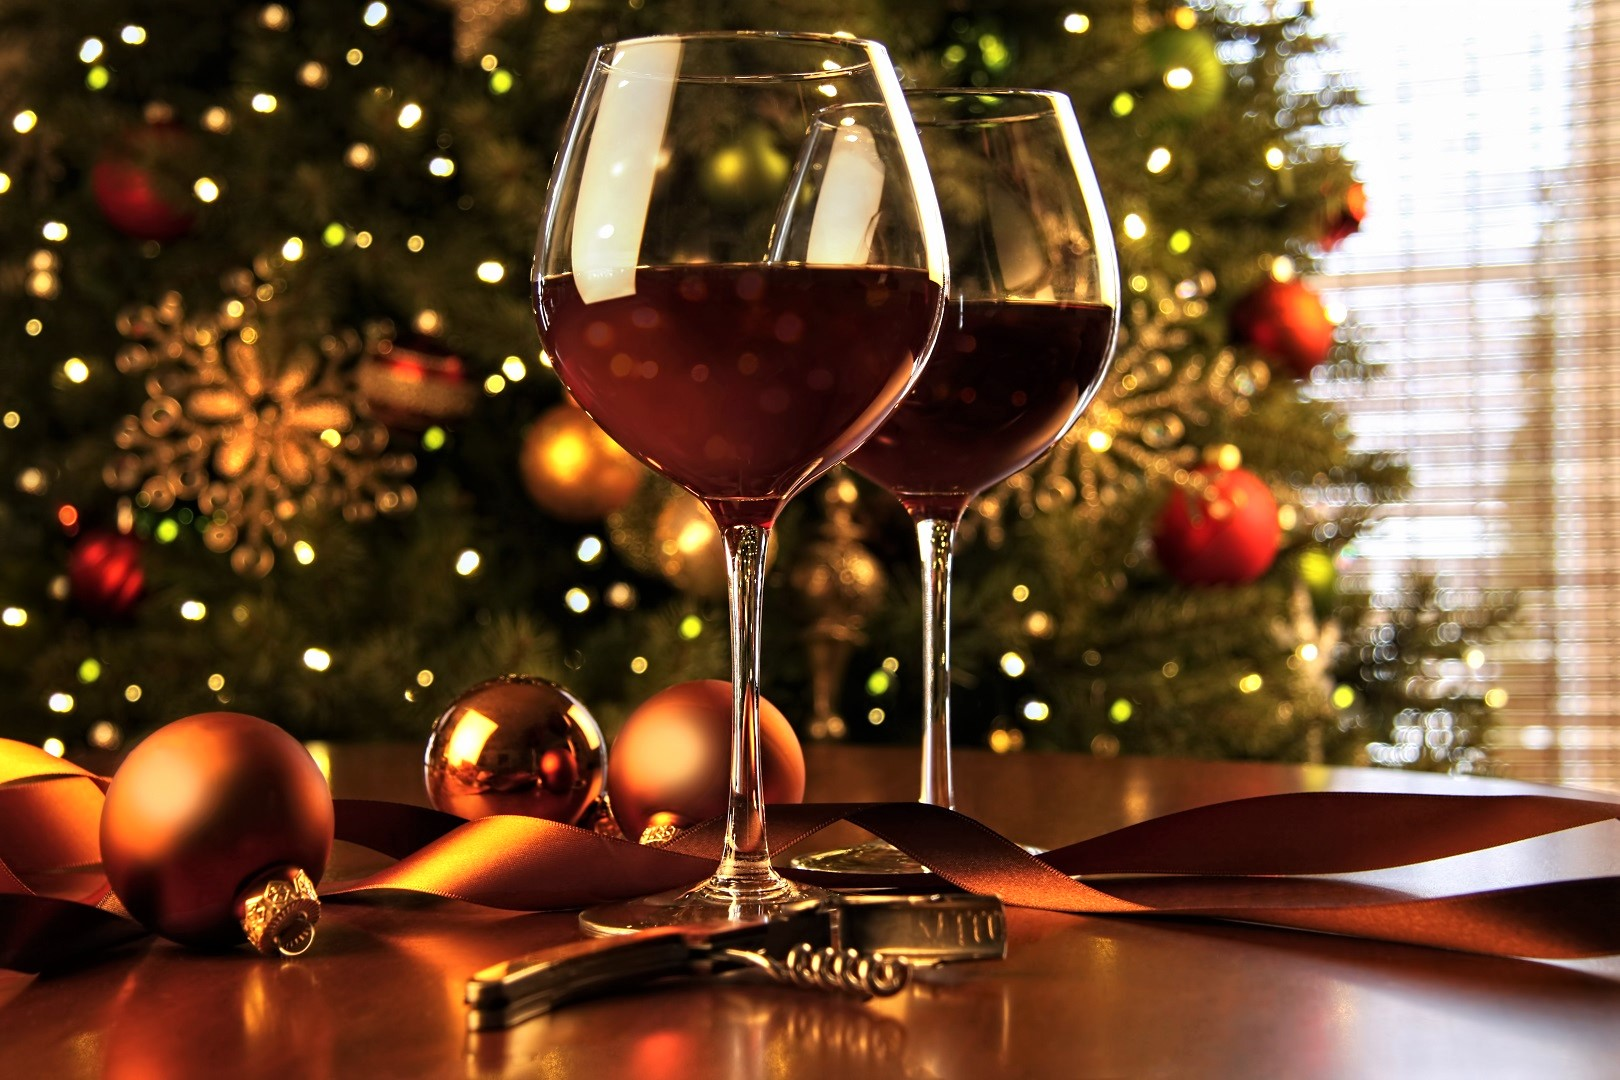 Red Wine Glasses on Table In Front of Christmas Tree